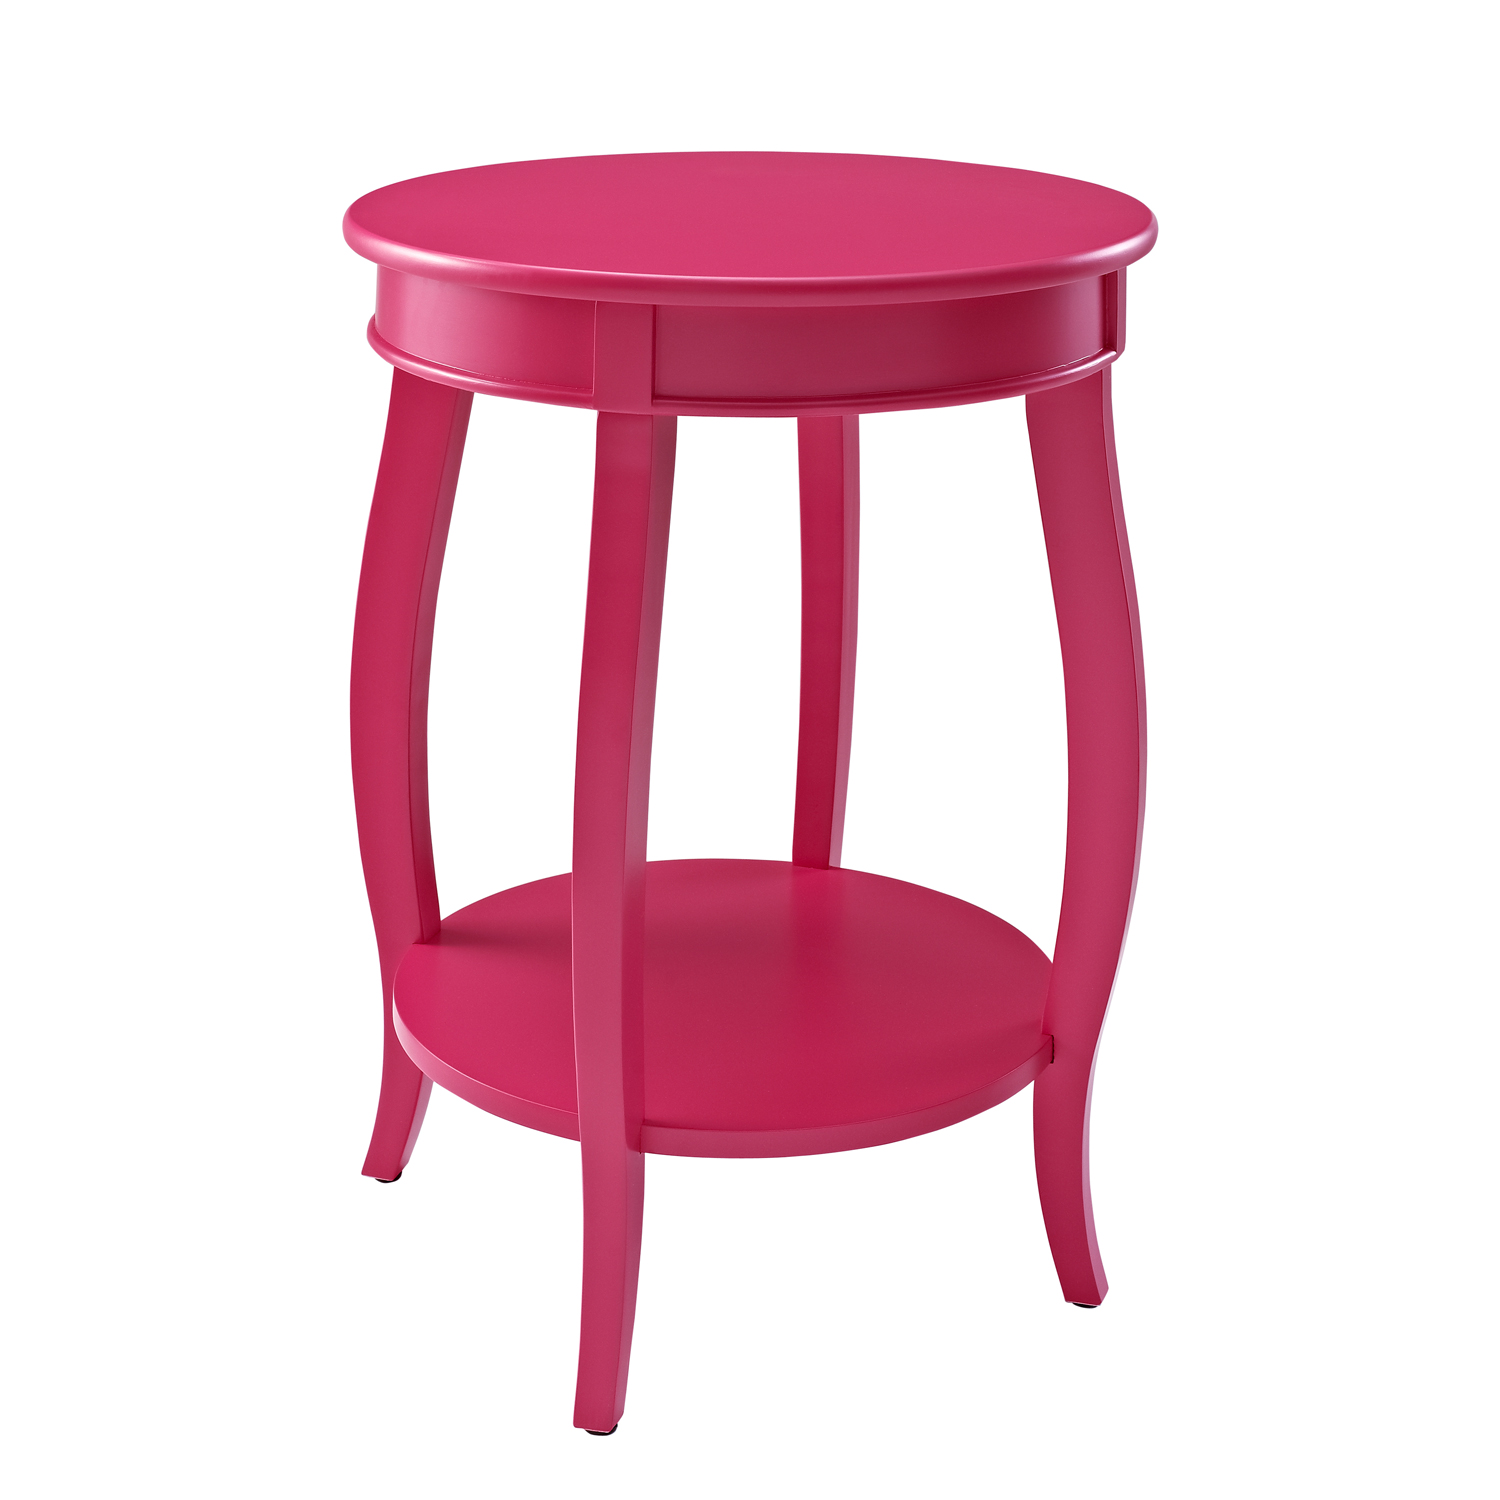 Round Table with Shelf, BUBBLE GUM